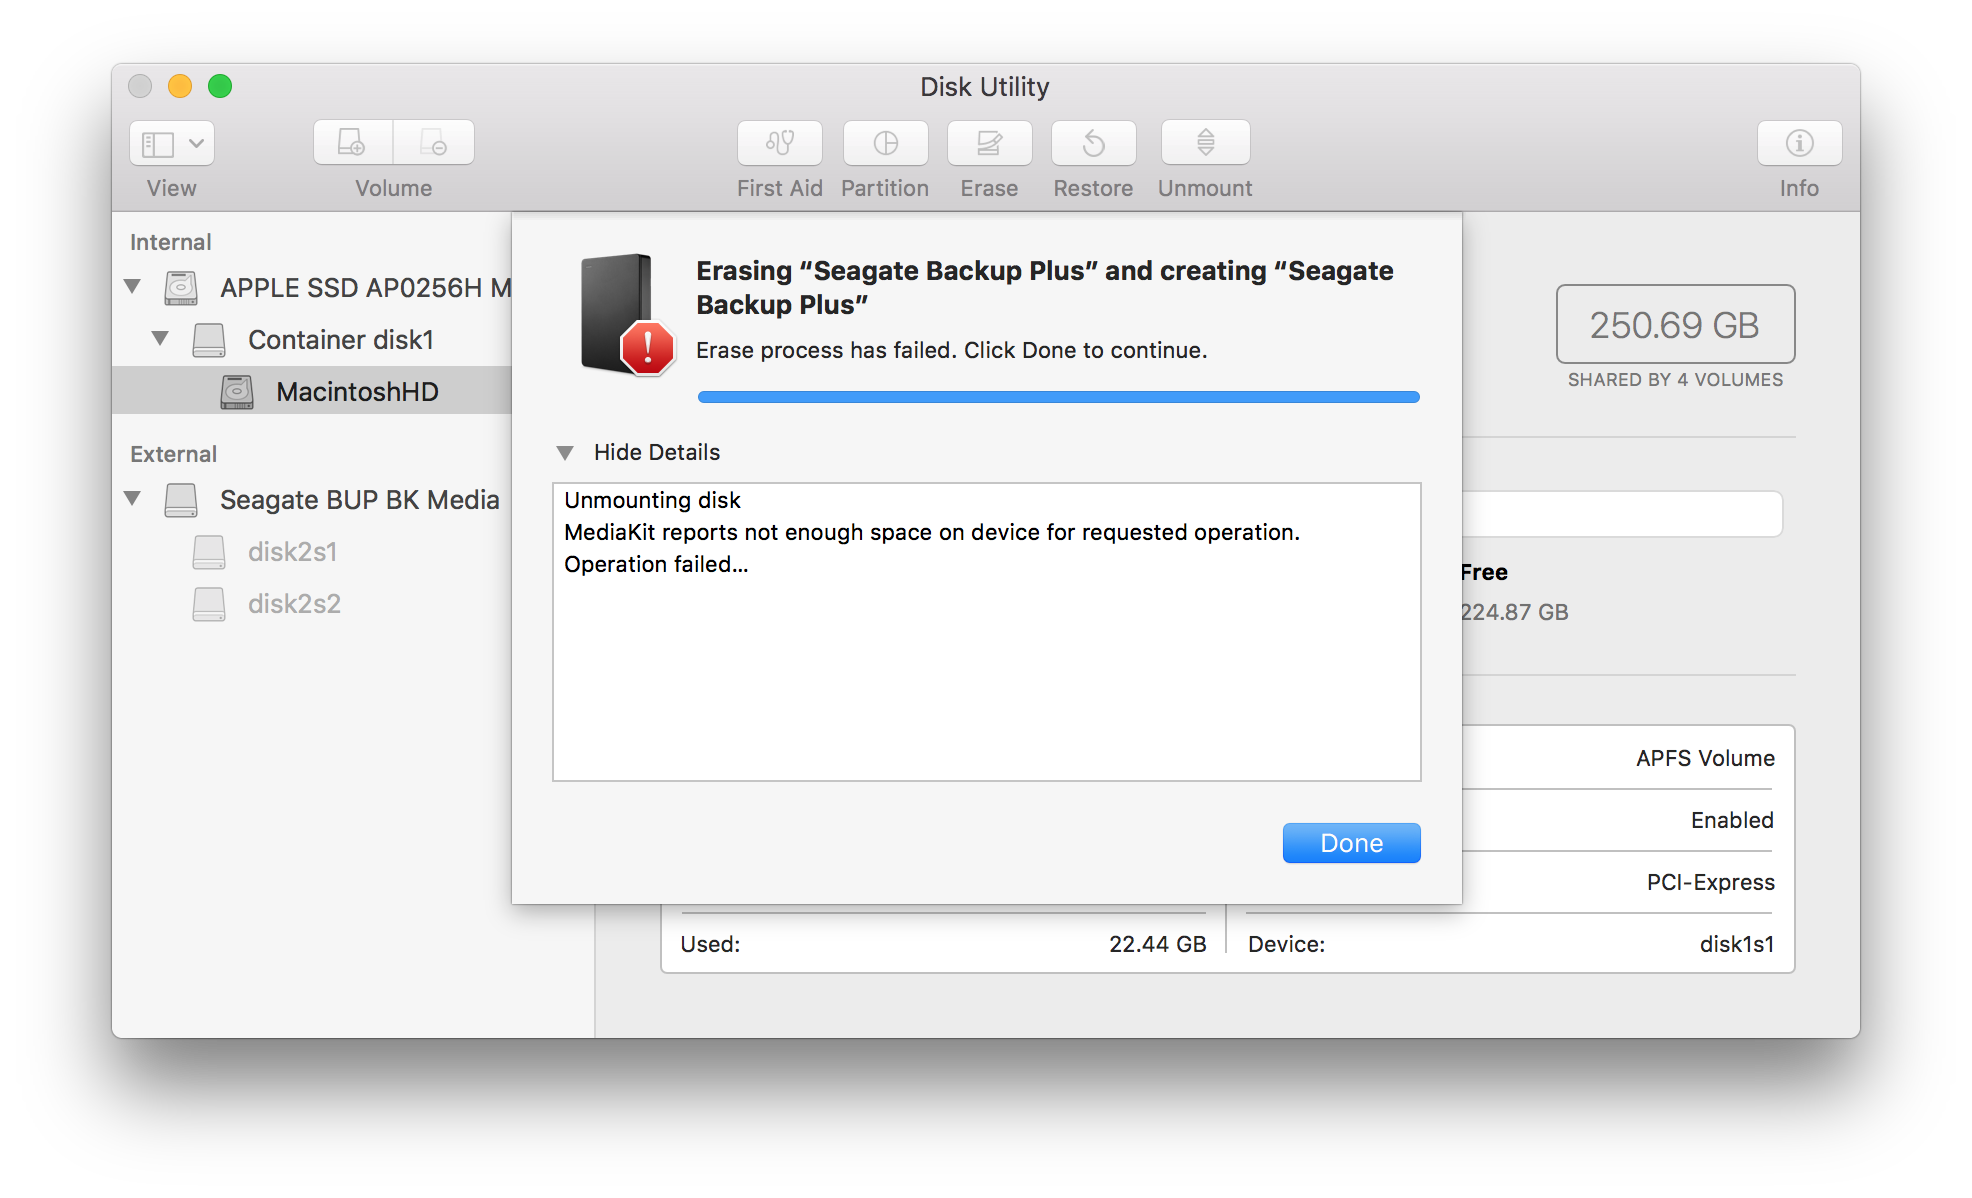 Disk Utility Errors and Questions for macOS 10 11 and higher